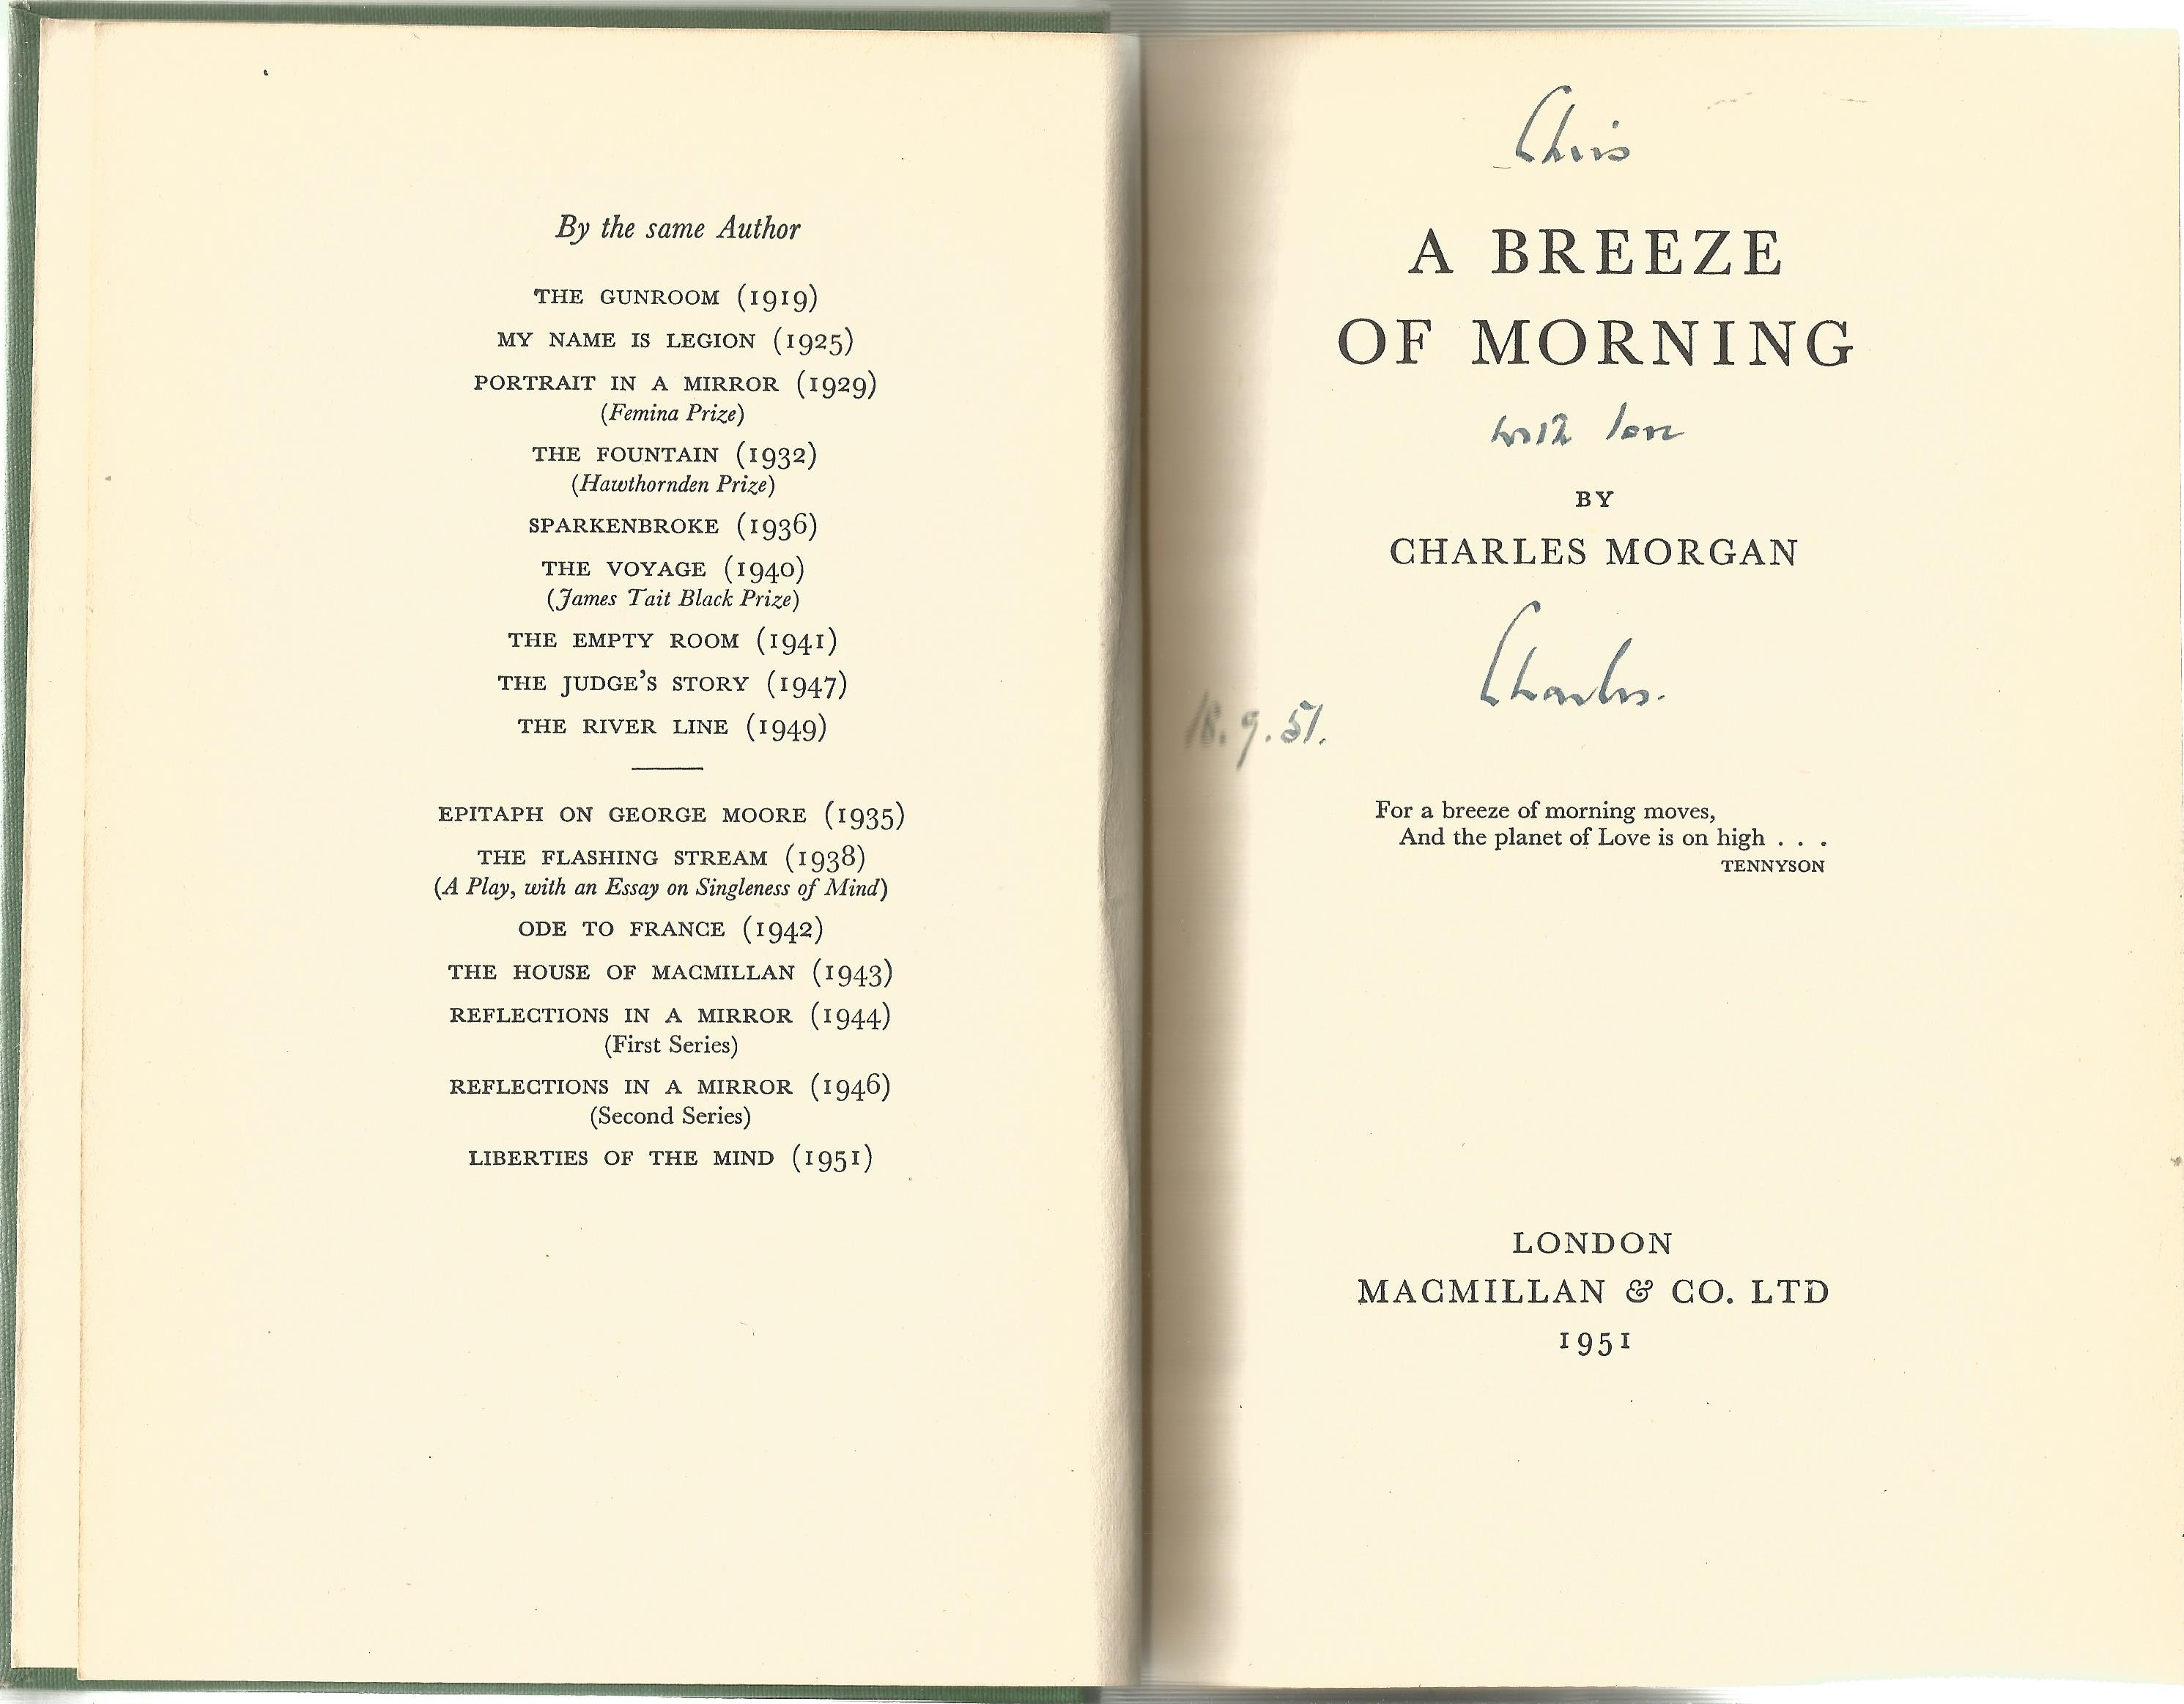 Charles Morgan Hardback Book A Breeze of Morning 1951 signed by the Author on the Title Page and - Image 2 of 2